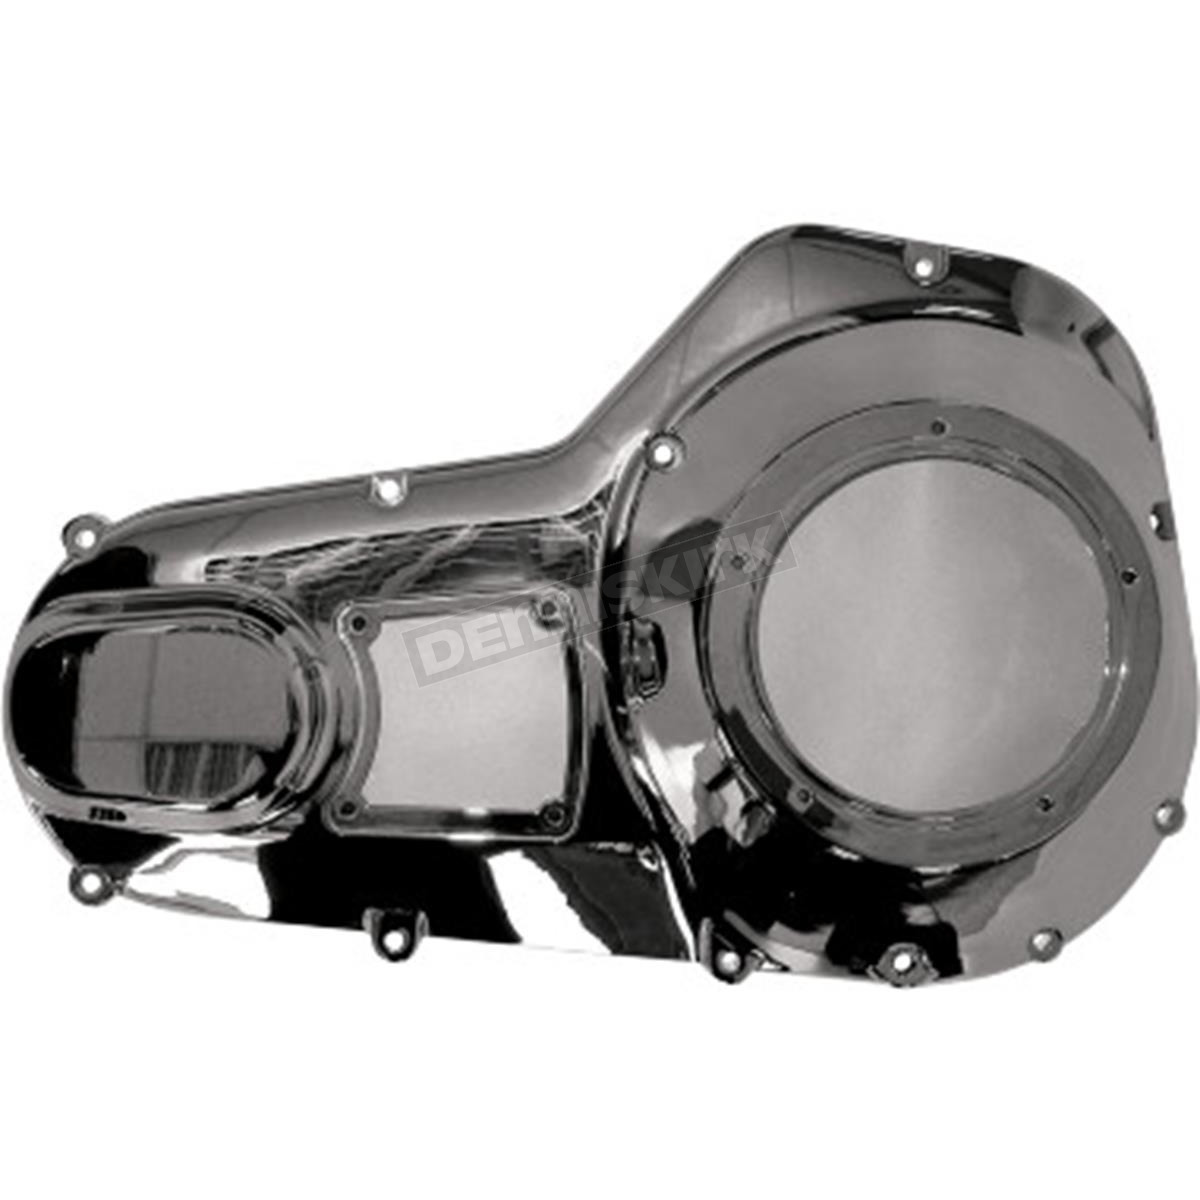 Chopper Primary Cover : Drag specialties chrome outer primary cover